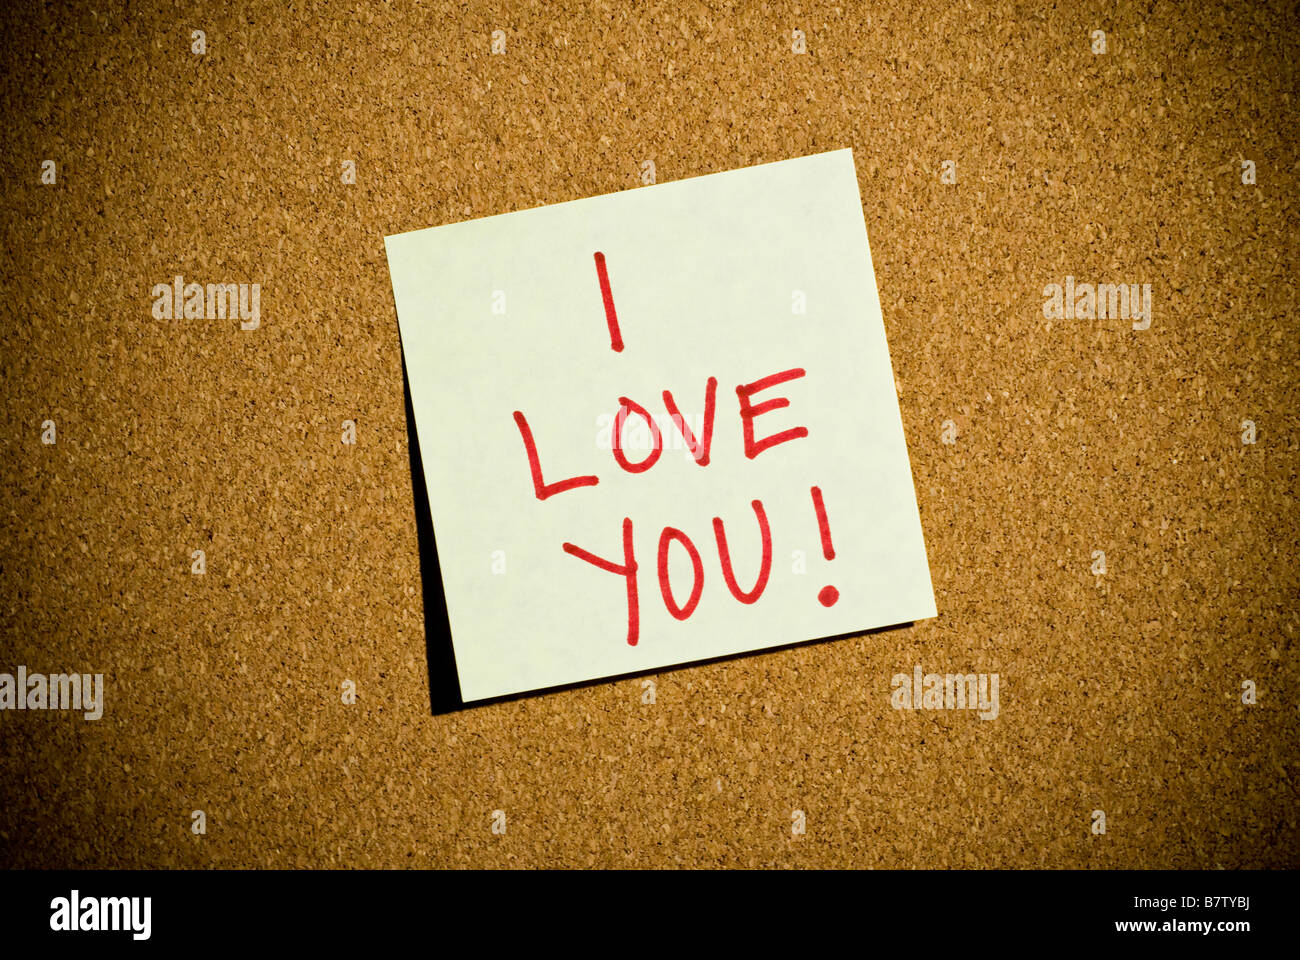 A post it note memo on a cork board that says I Love You. - Stock Image